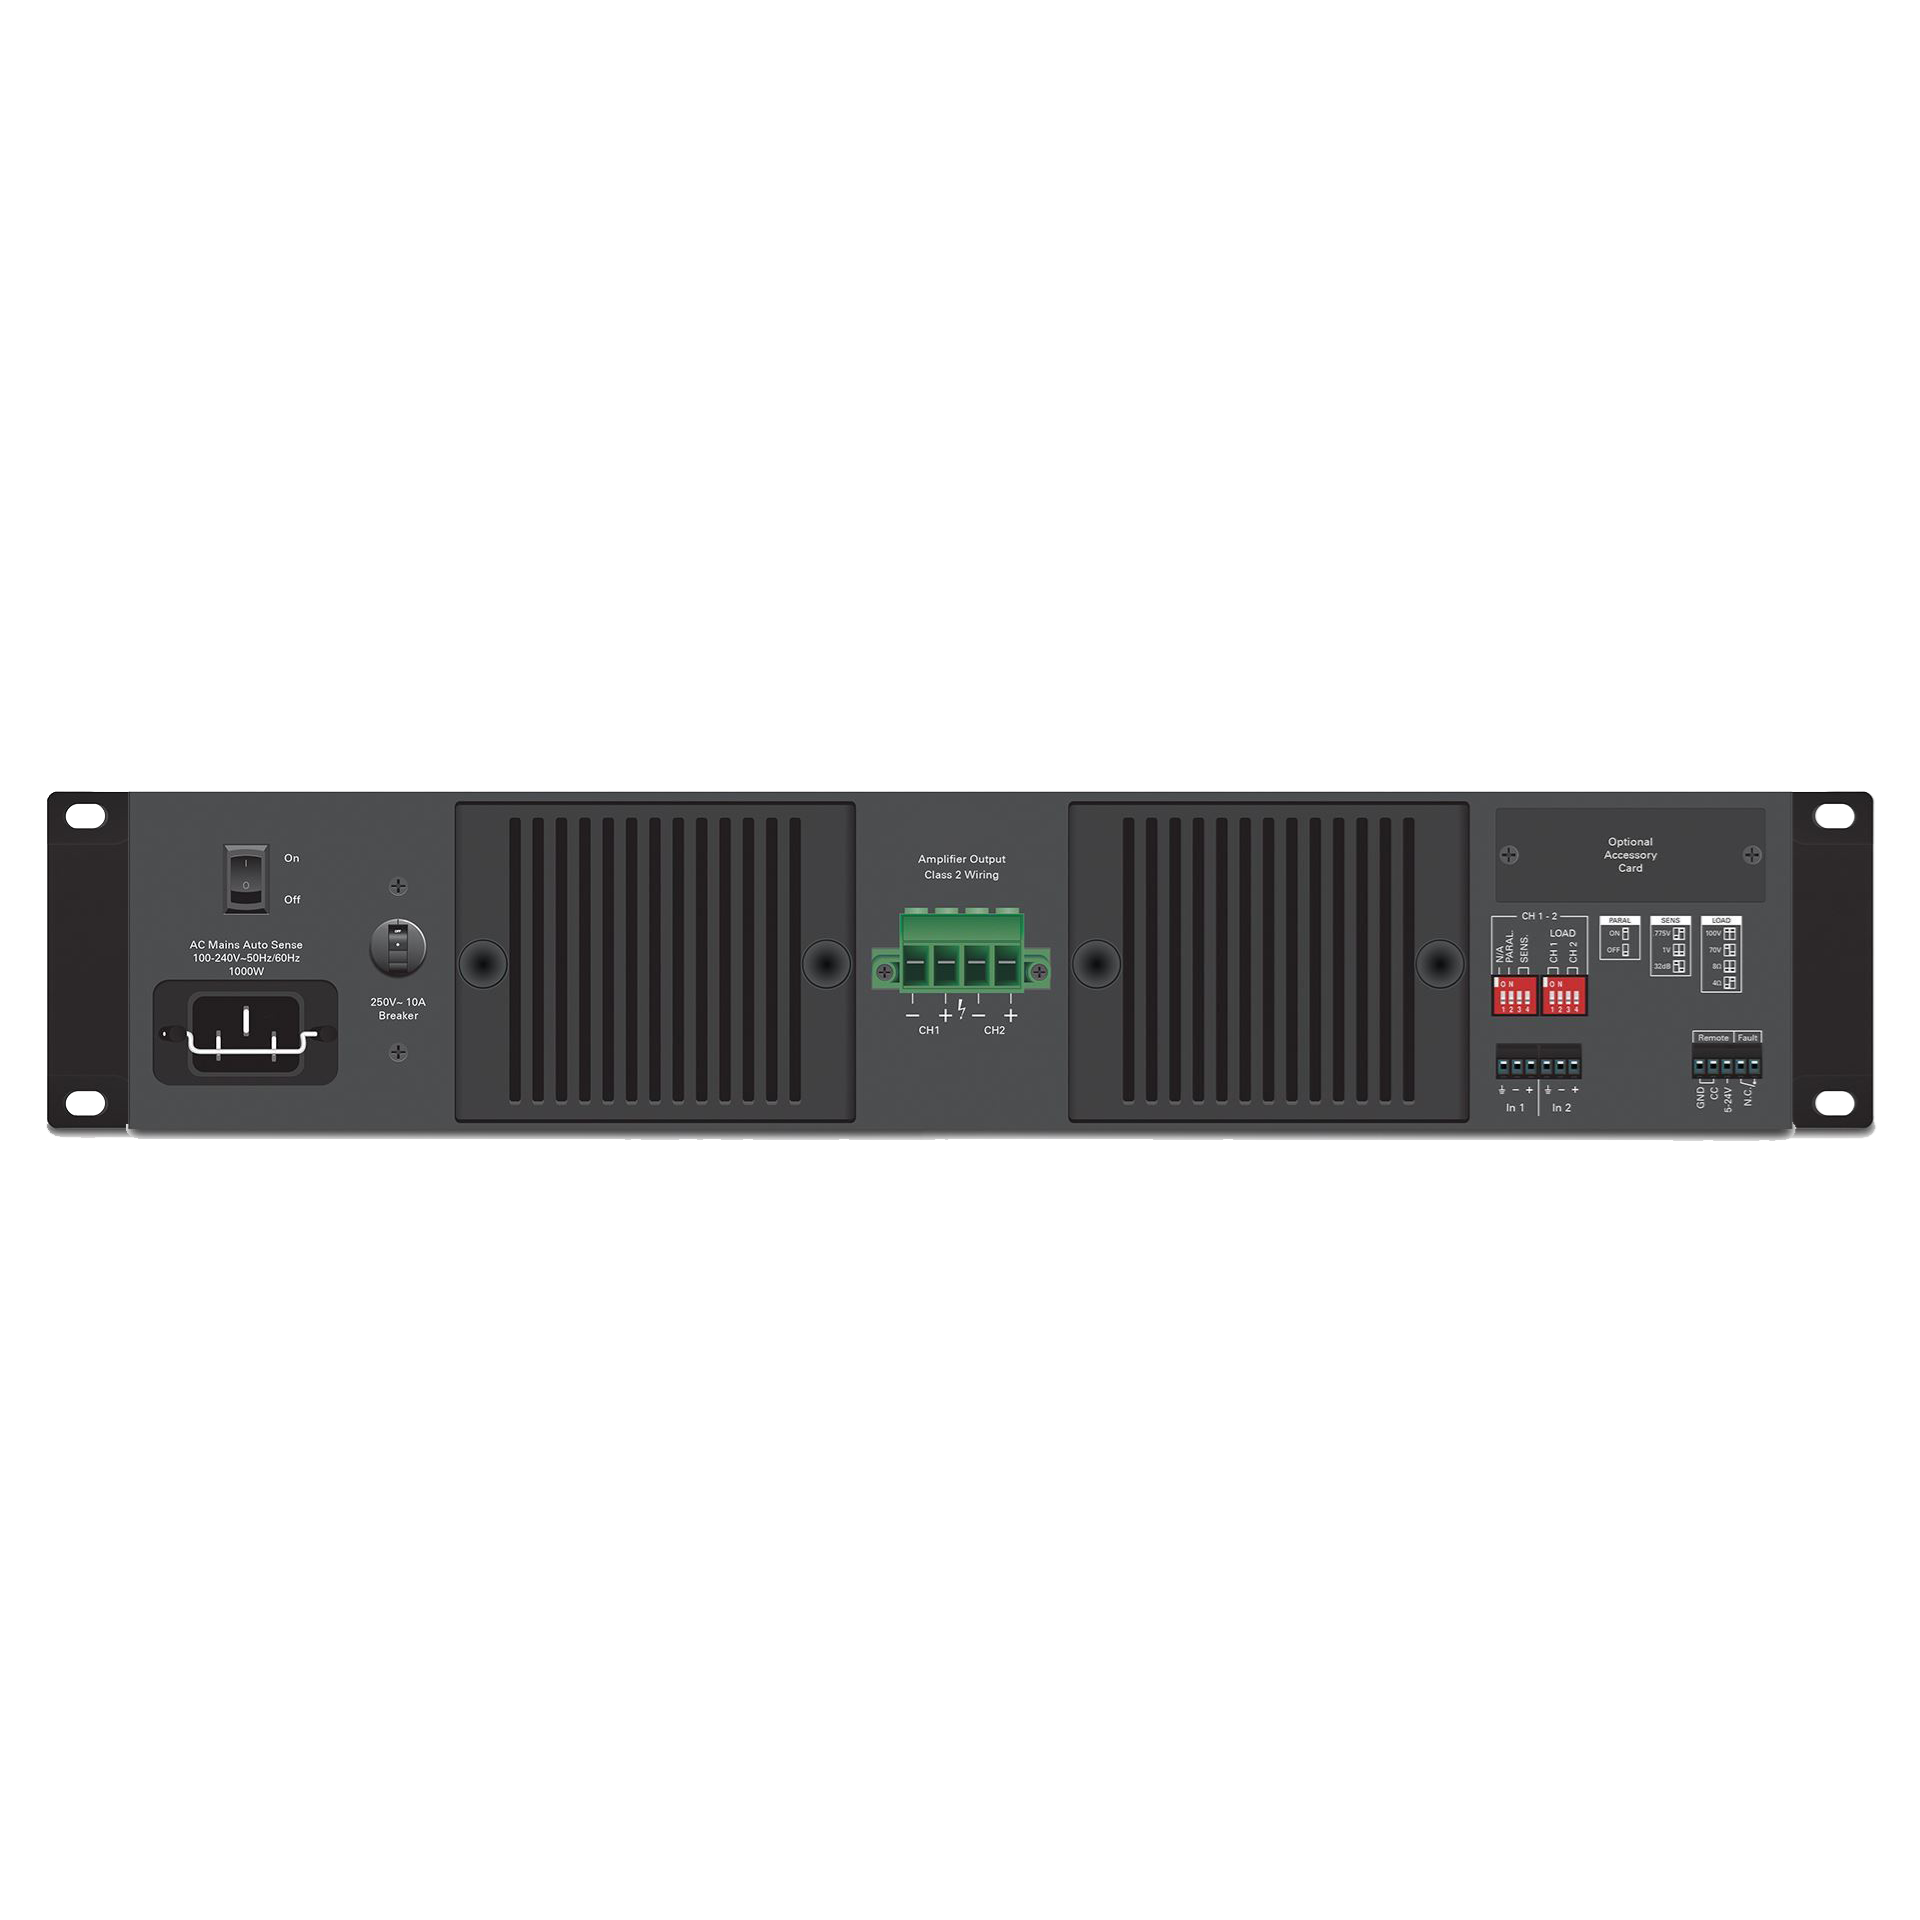 1300w hpa series dual channel commercial amplifier atlasied dual channel 1300 watt commercial amplifier sciox Choice Image